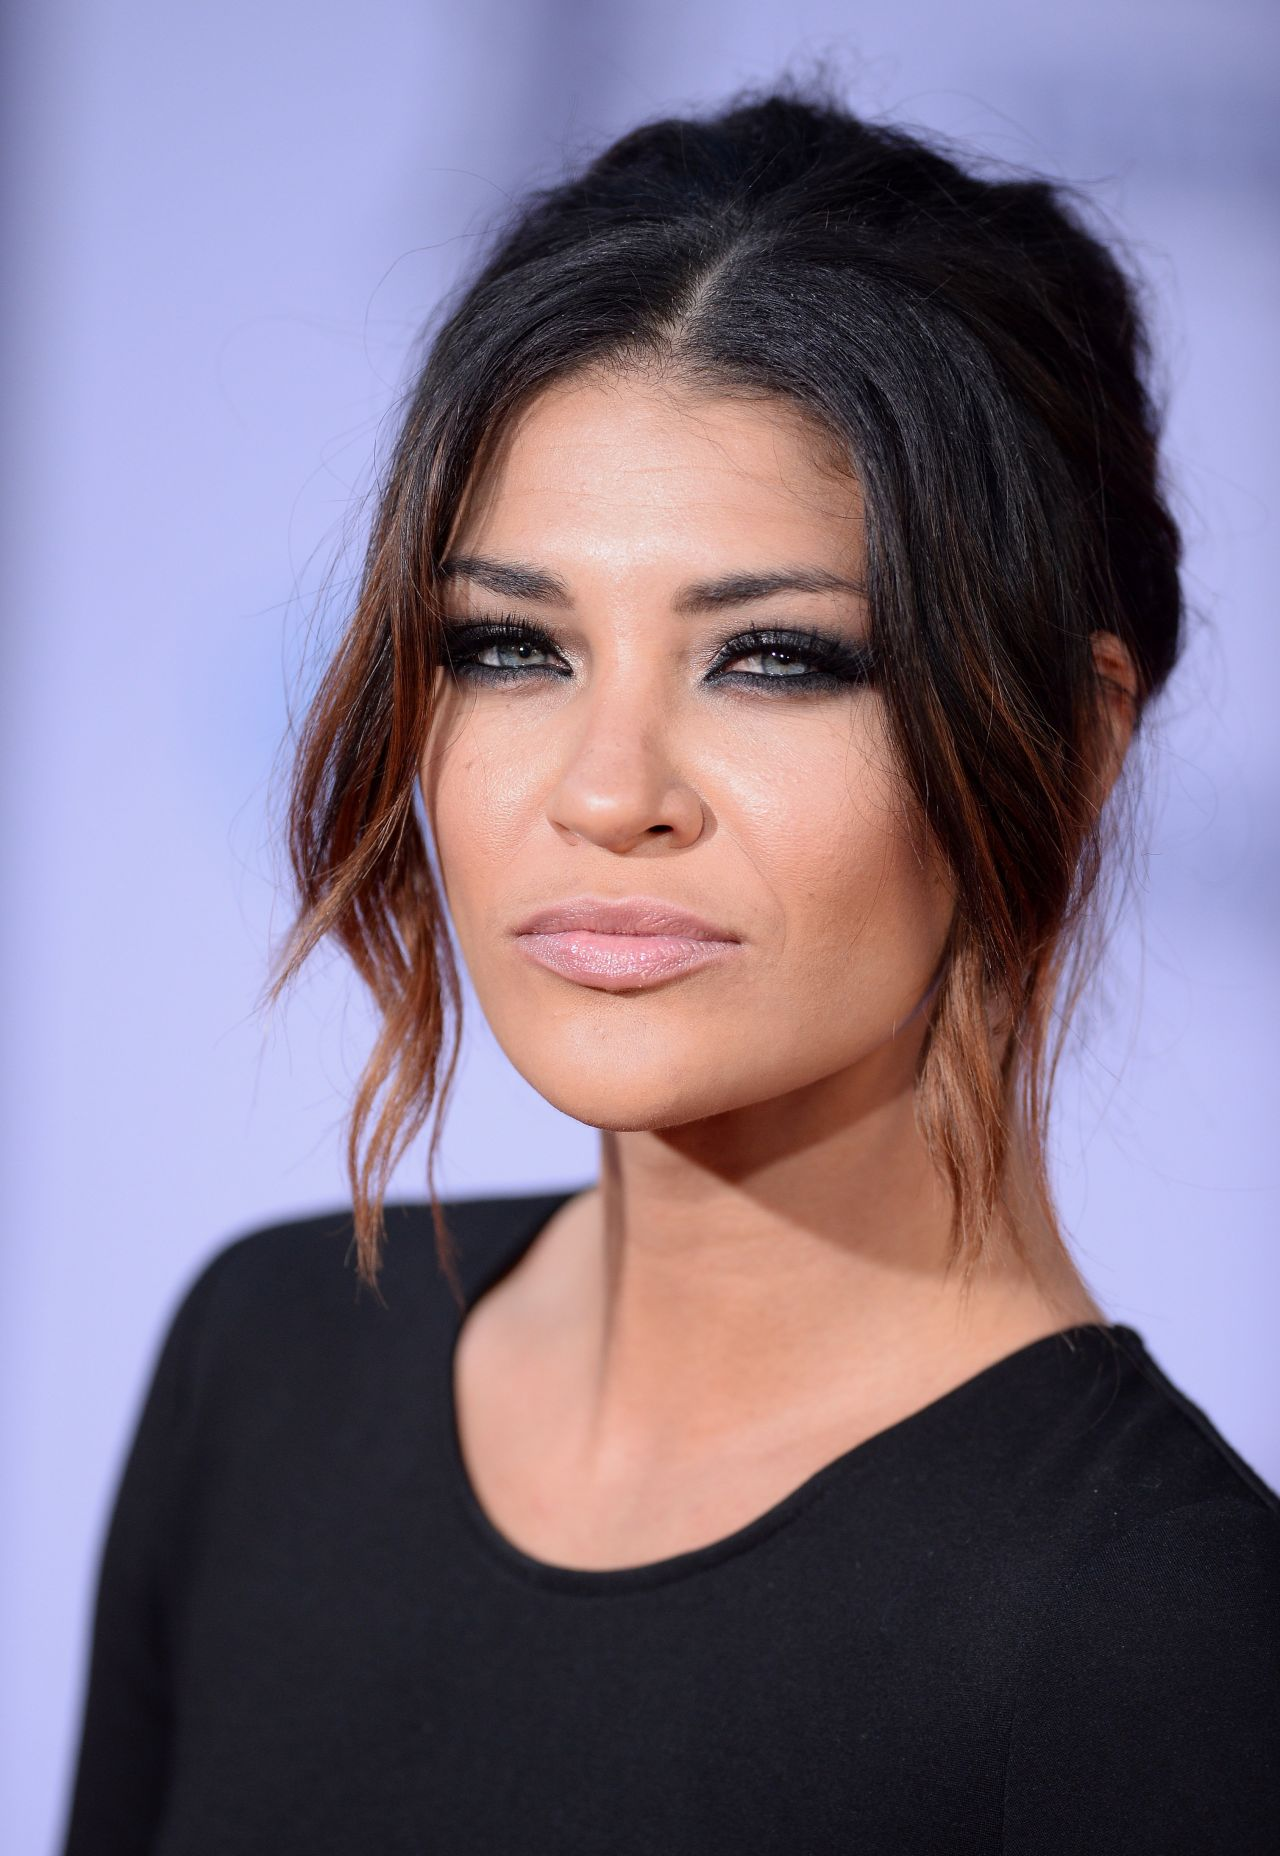 Mercedes Benz Las Vegas >> Jessica Szohr - 'Captain America: The Winter Soldier' Premiere in Hollywood